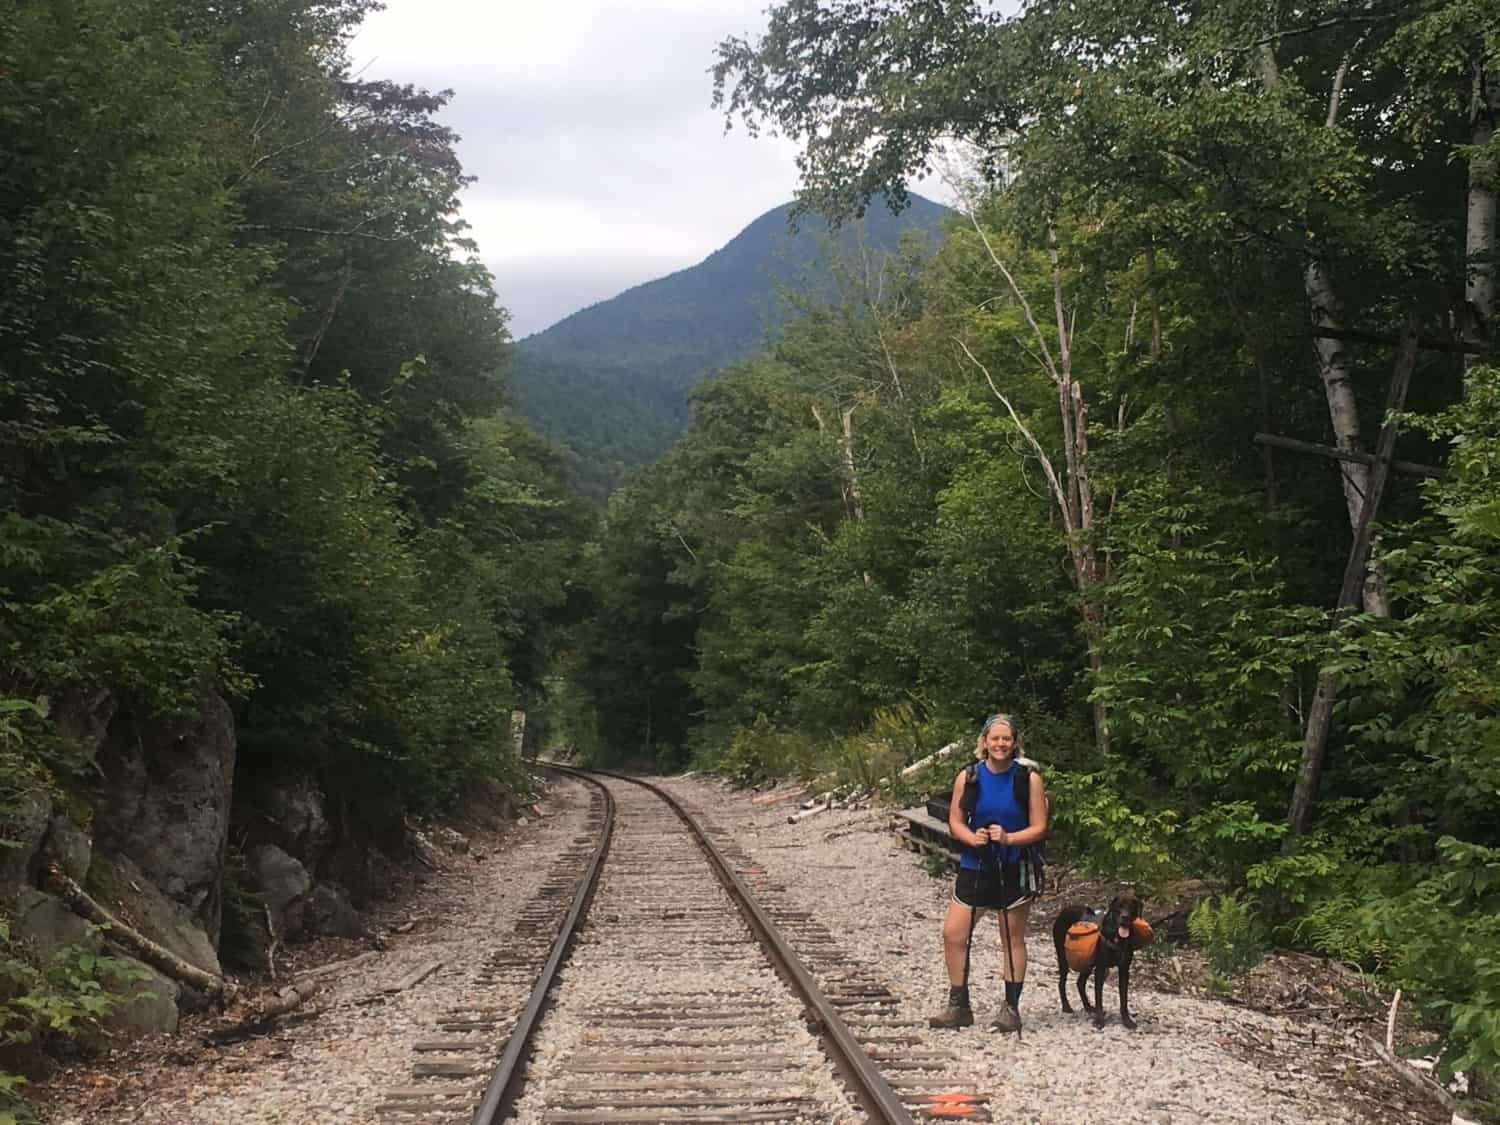 Dog and woman hiking along train tracks on the pet friendly Appalachian Trail in New Hampshire